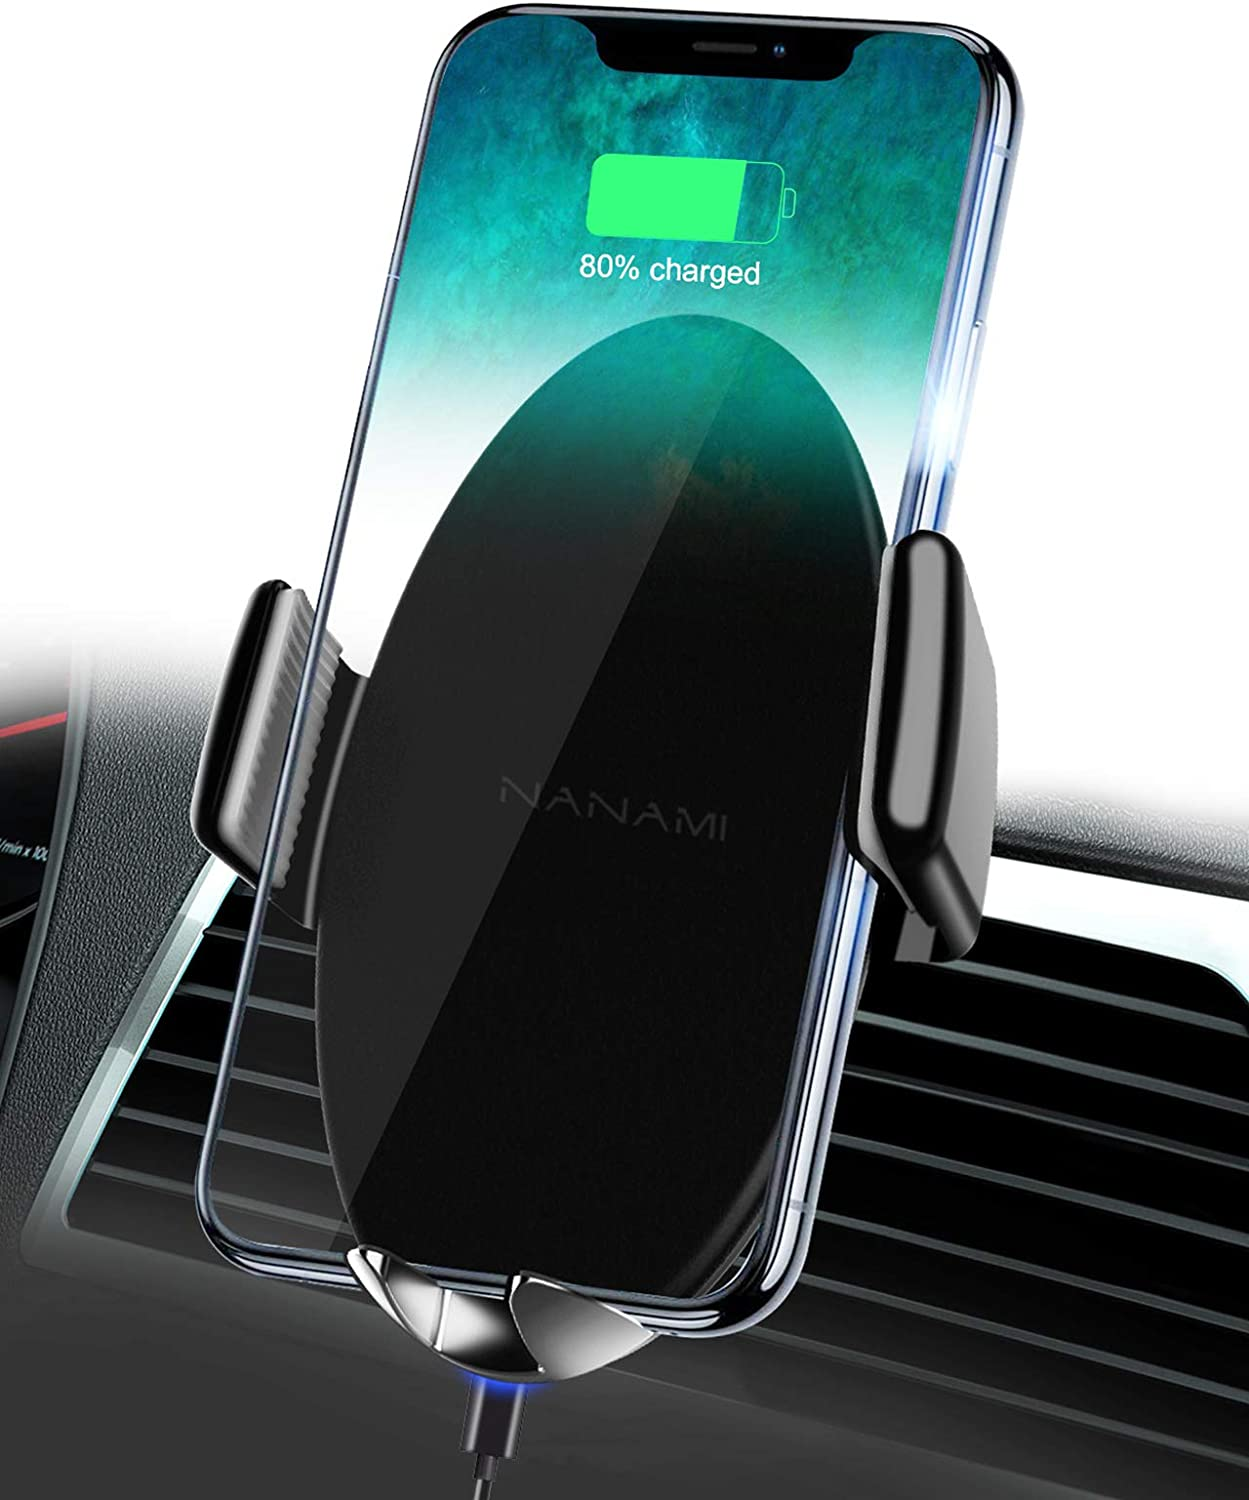 NANAMI Wireless Car Charger Mount with Fast Charging Technology